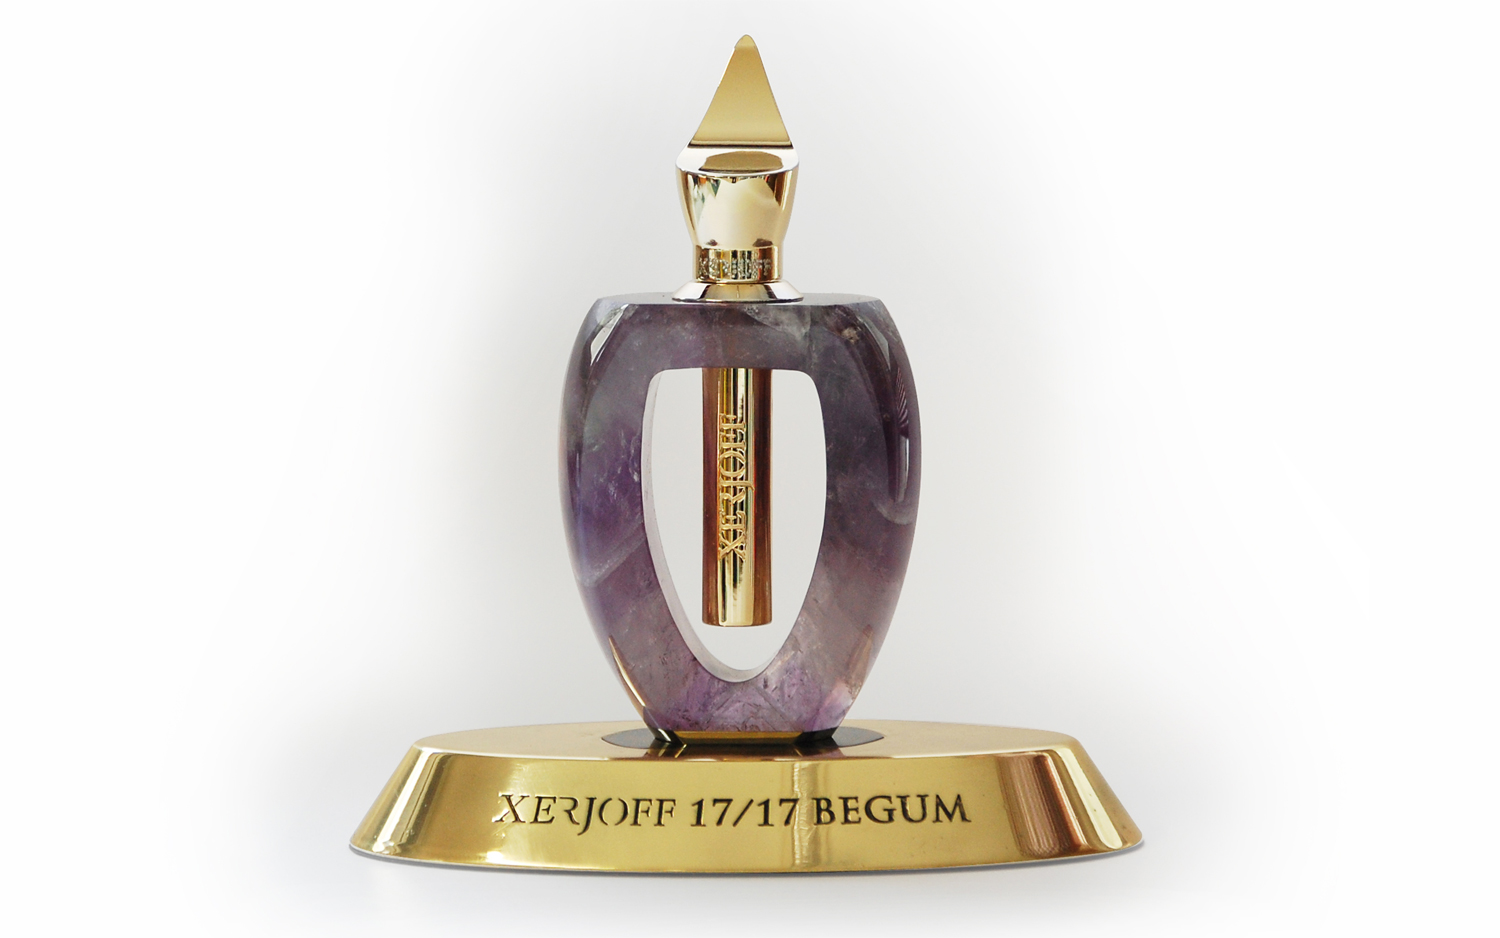 Haute Italian perfume house Xerjoff launches BEGUM